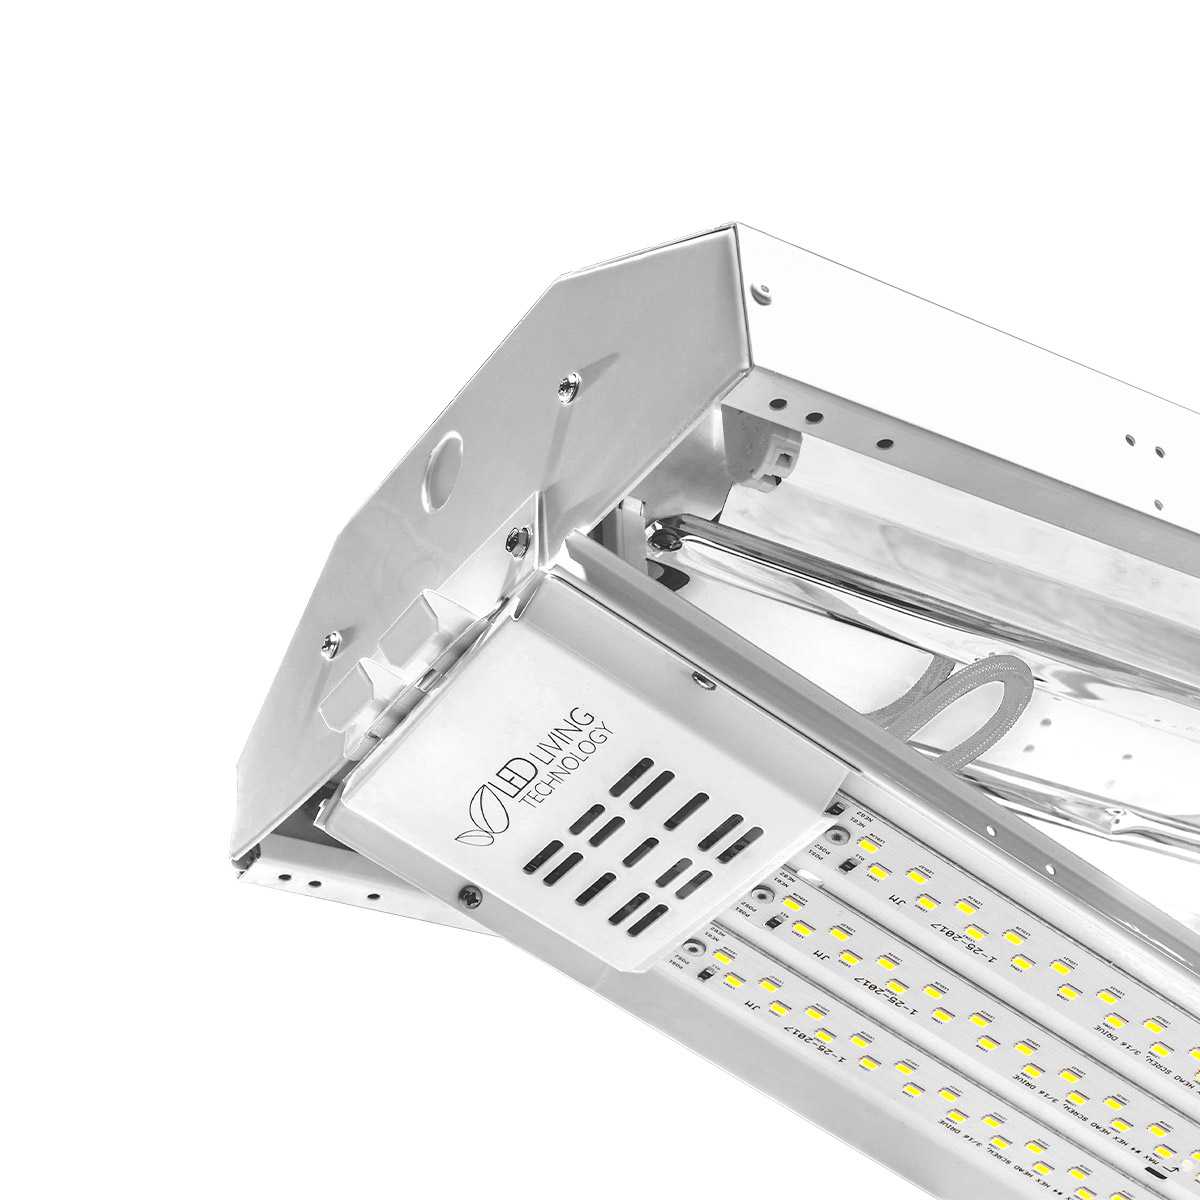 Rapid single-person installation is possible with this LED retrofit for fluorescent linear high bays